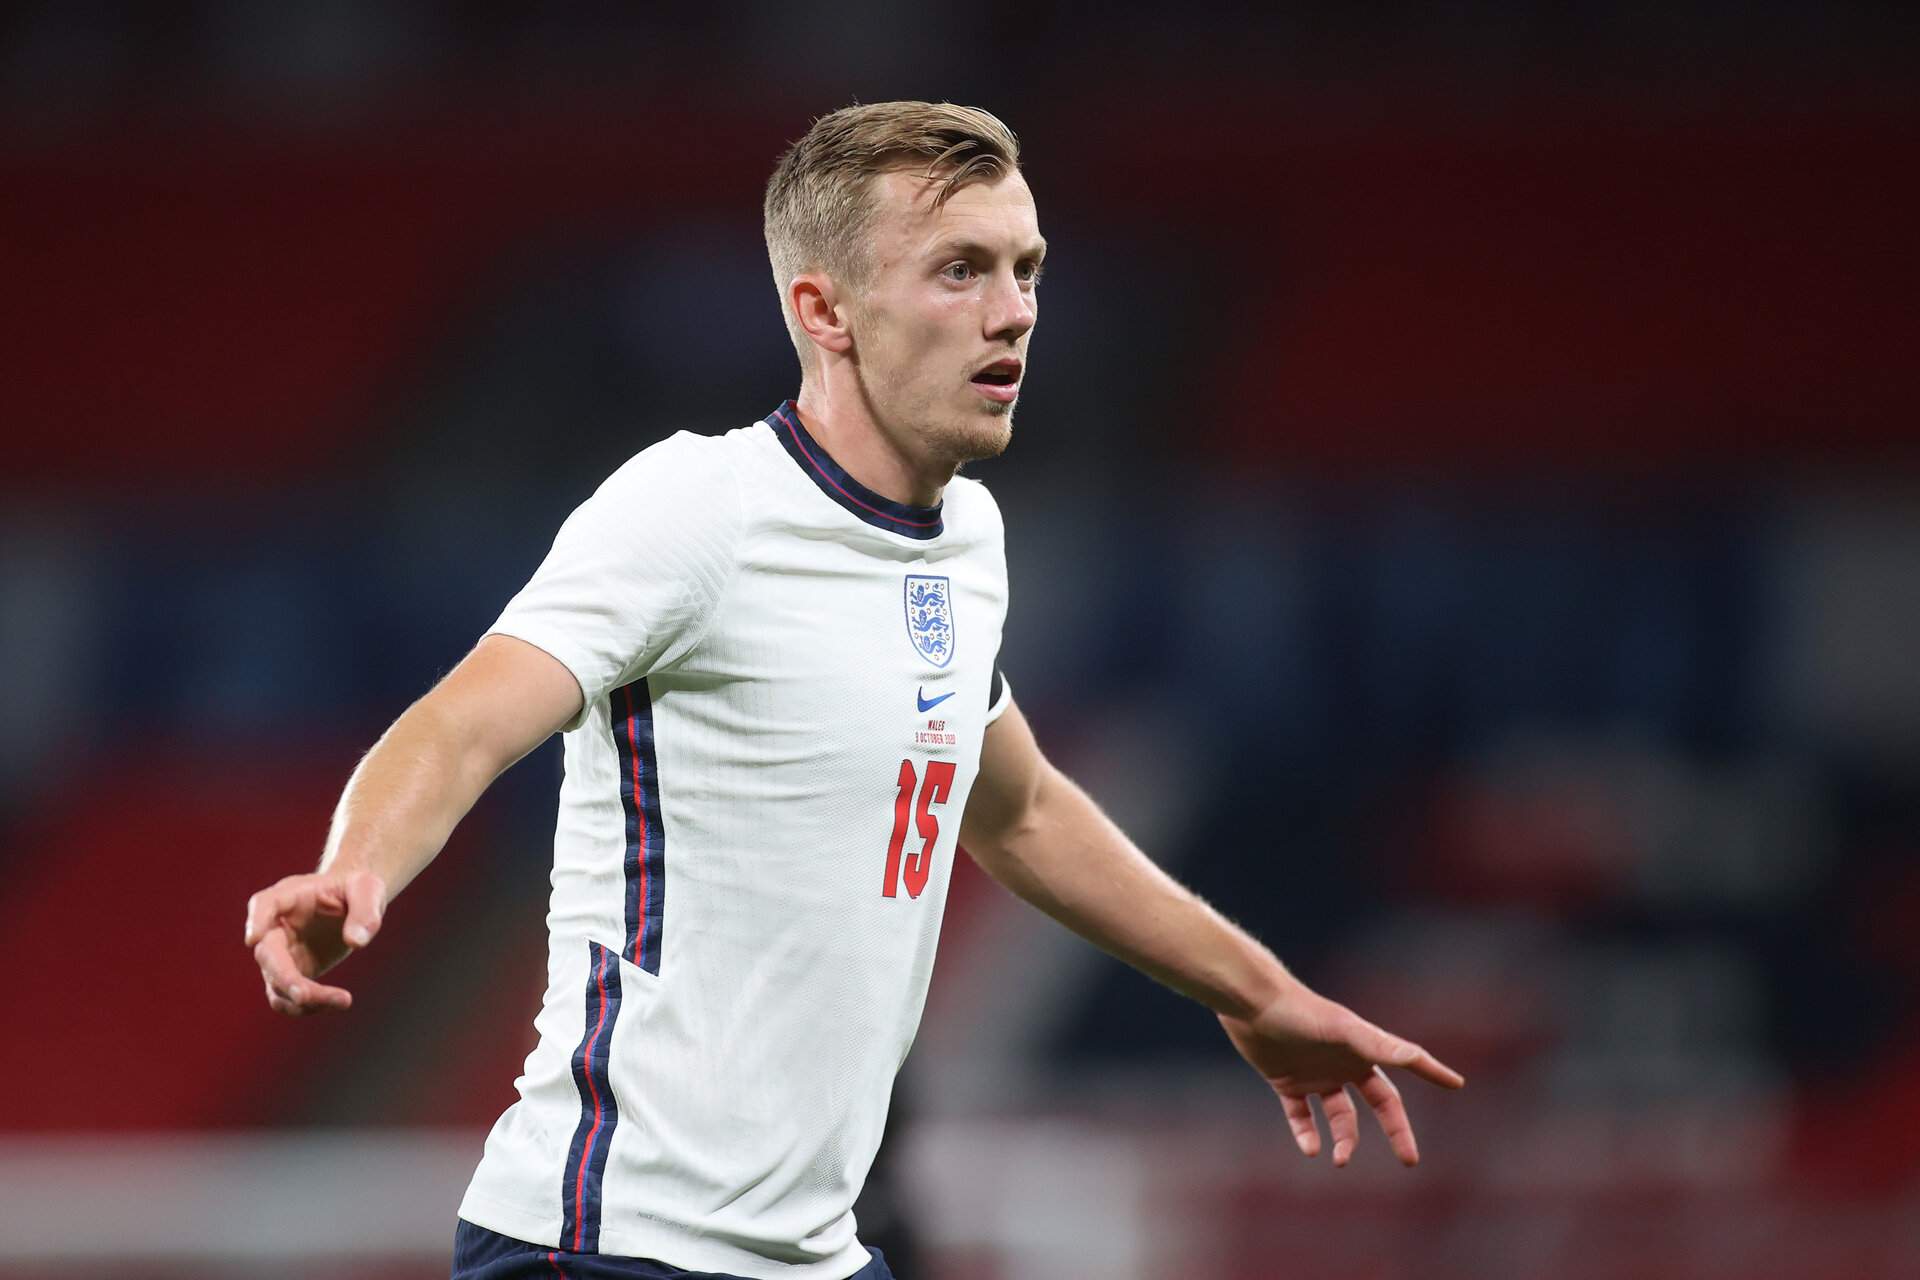 LONDON, ENGLAND - OCTOBER 08: James Ward-Prowse of England in action during the international friendly match between England and Wales at Wembley Stadium on October 08, 2020 in London, England. Sporting stadiums around the UK remain under strict restrictions due to the Coronavirus Pandemic as Government social distancing laws prohibit fans inside venues resulting in games being played behind closed doors. (Photo by Carl Recine - Pool/Getty Images)